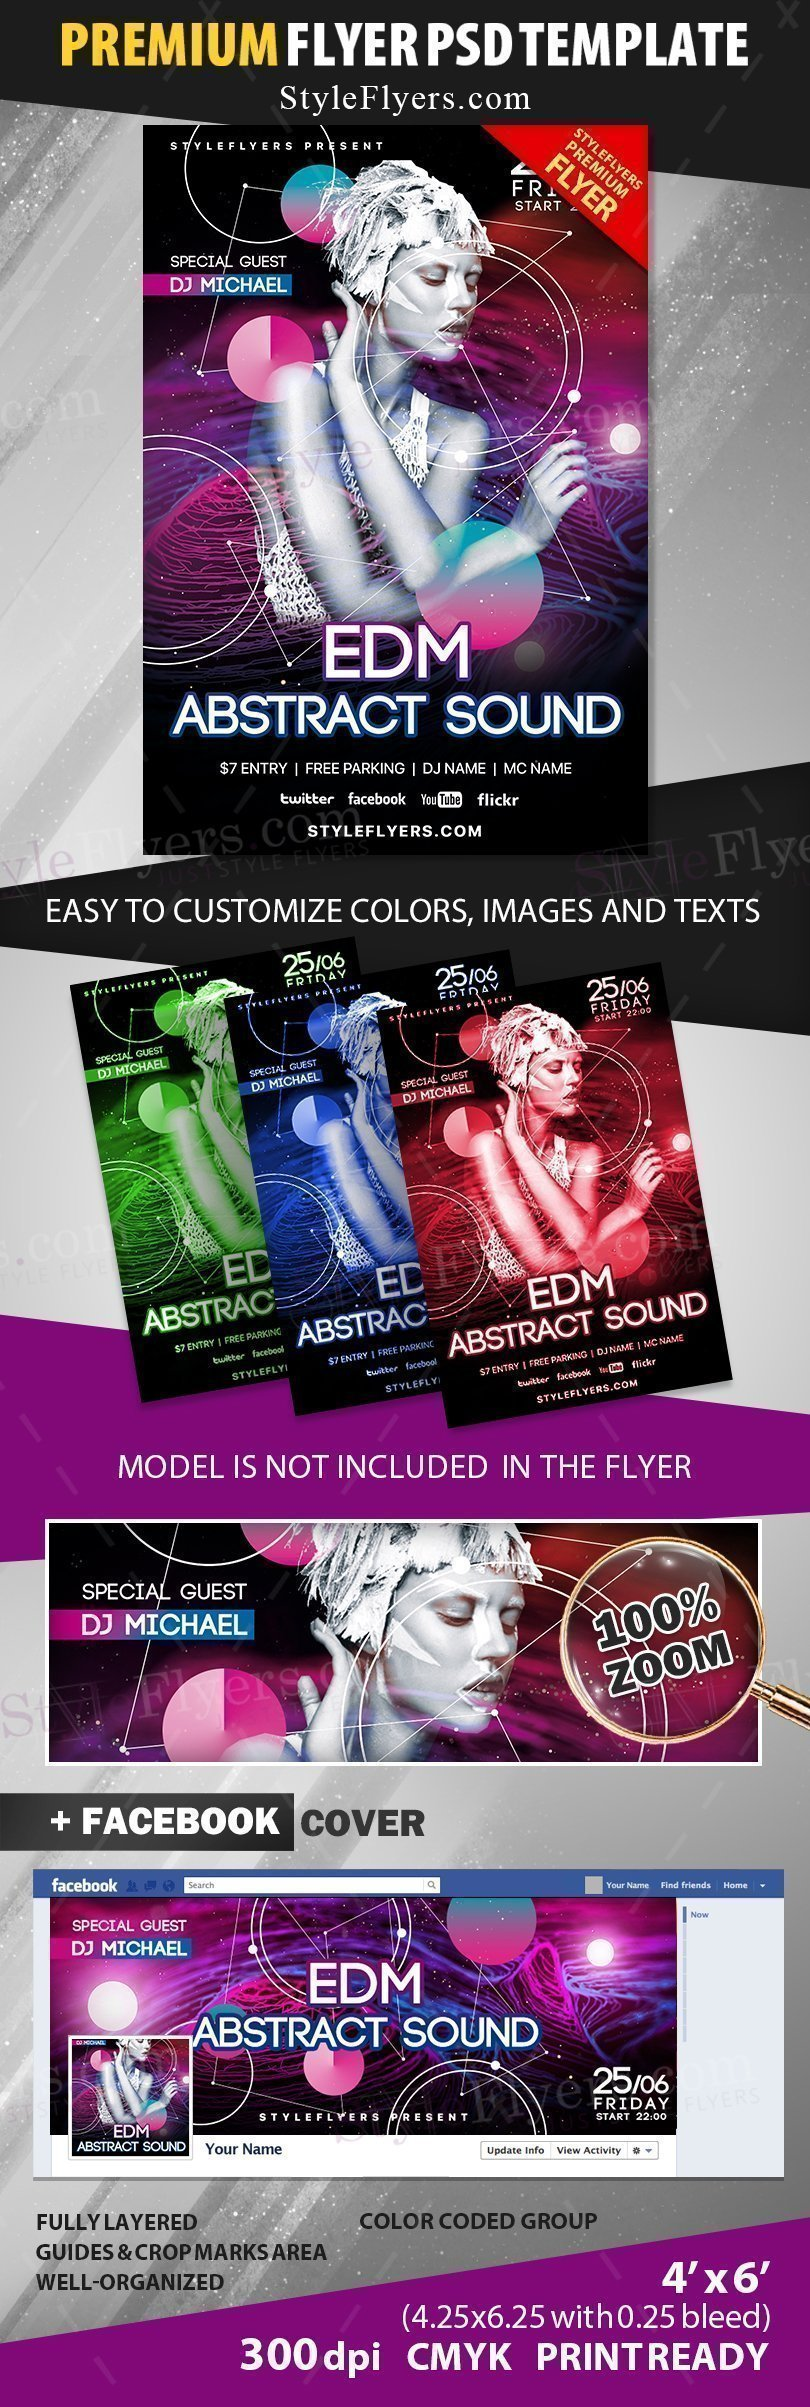 preview_edm abstract sound_psd_flyer